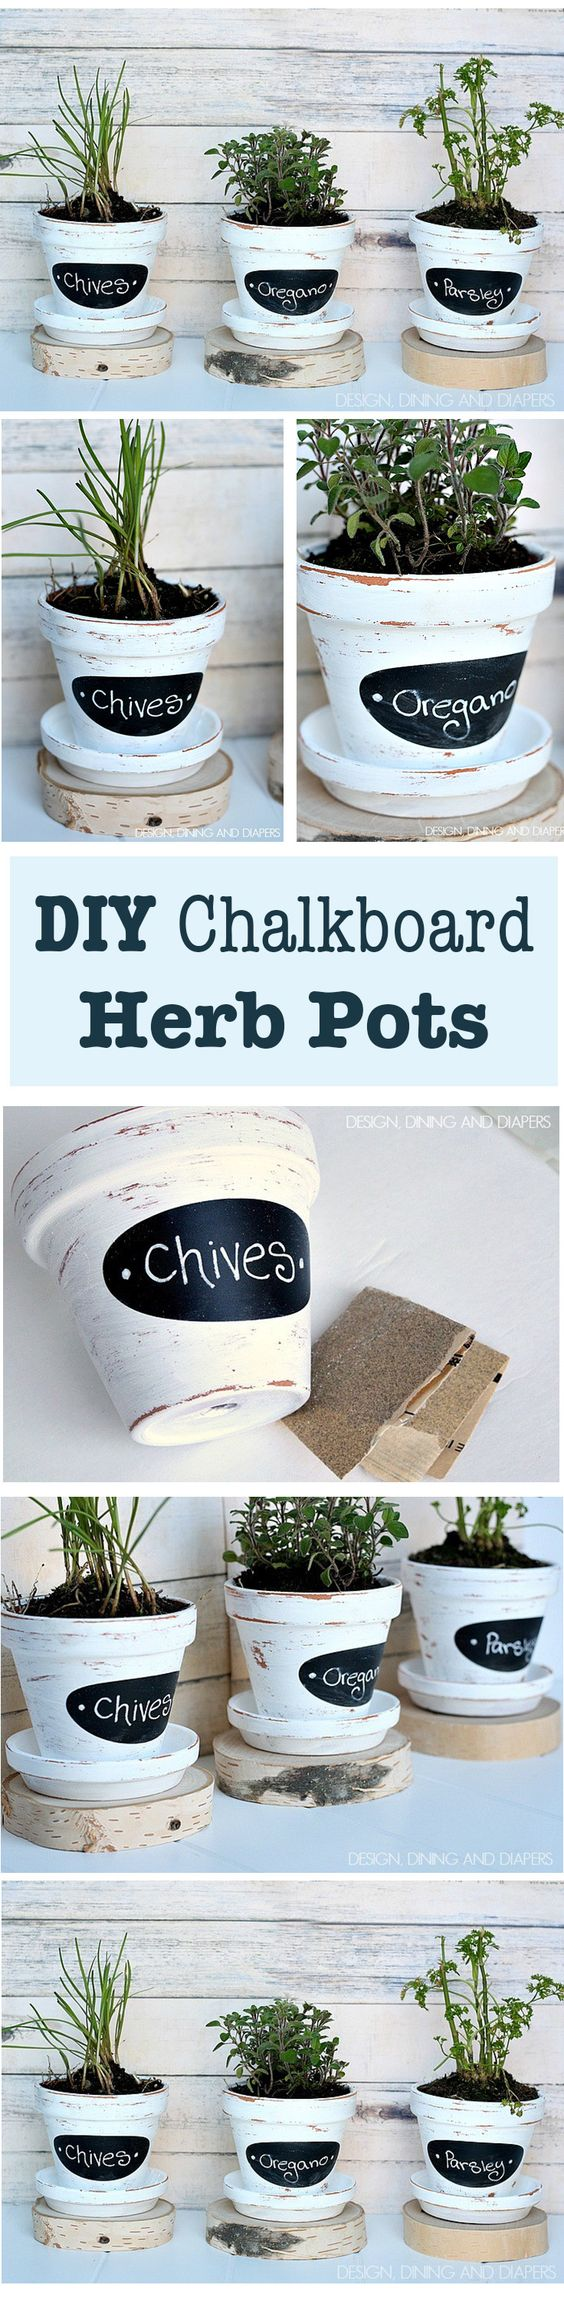 These Chalkboard Herb Pots are super trendy and really inexpensive to make and easy.